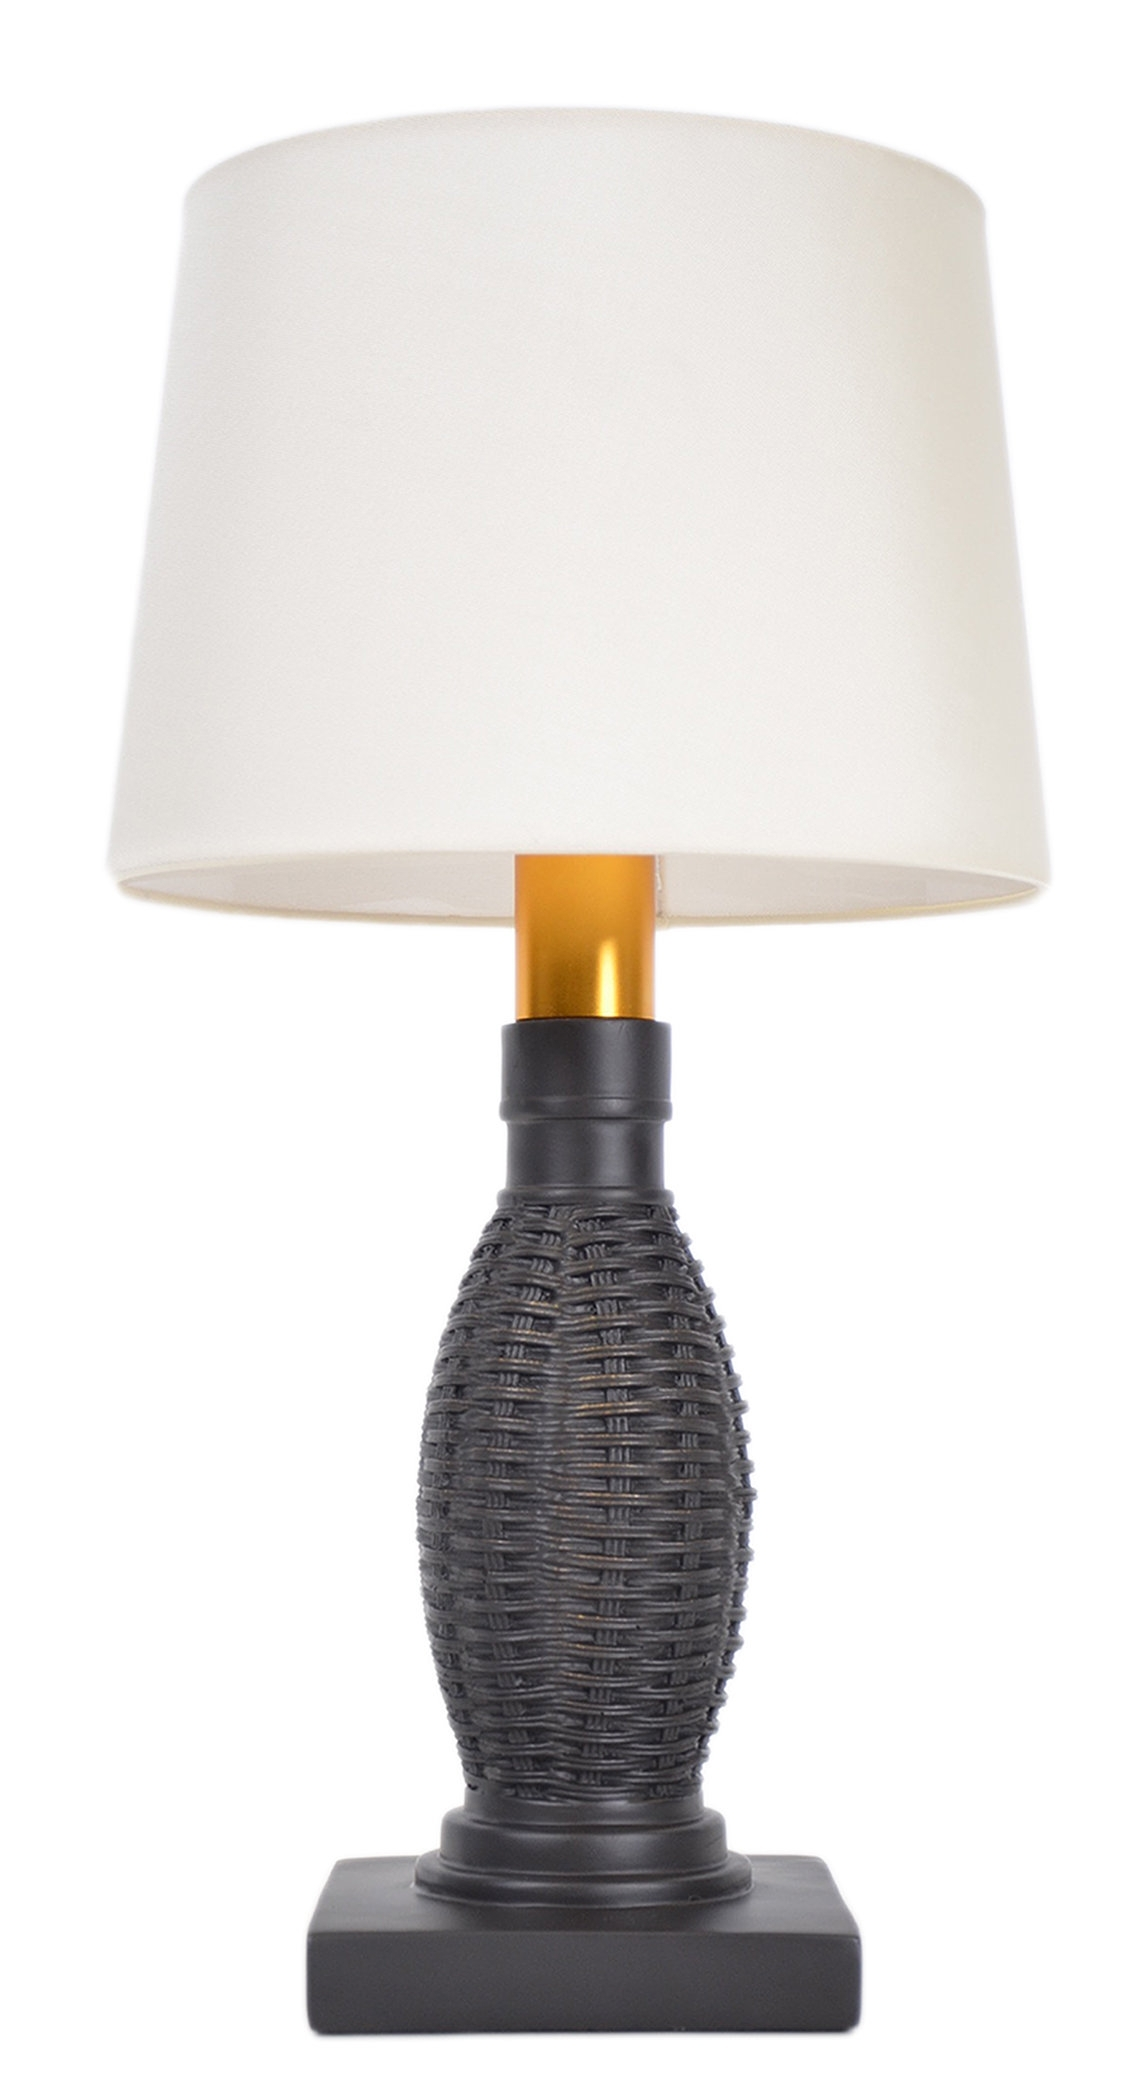 Unique Wireless Table Lamps Torch Light All Weather 24 Lamp Reviews Regarding Cordless Living Room Table Lamps (#15 of 15)